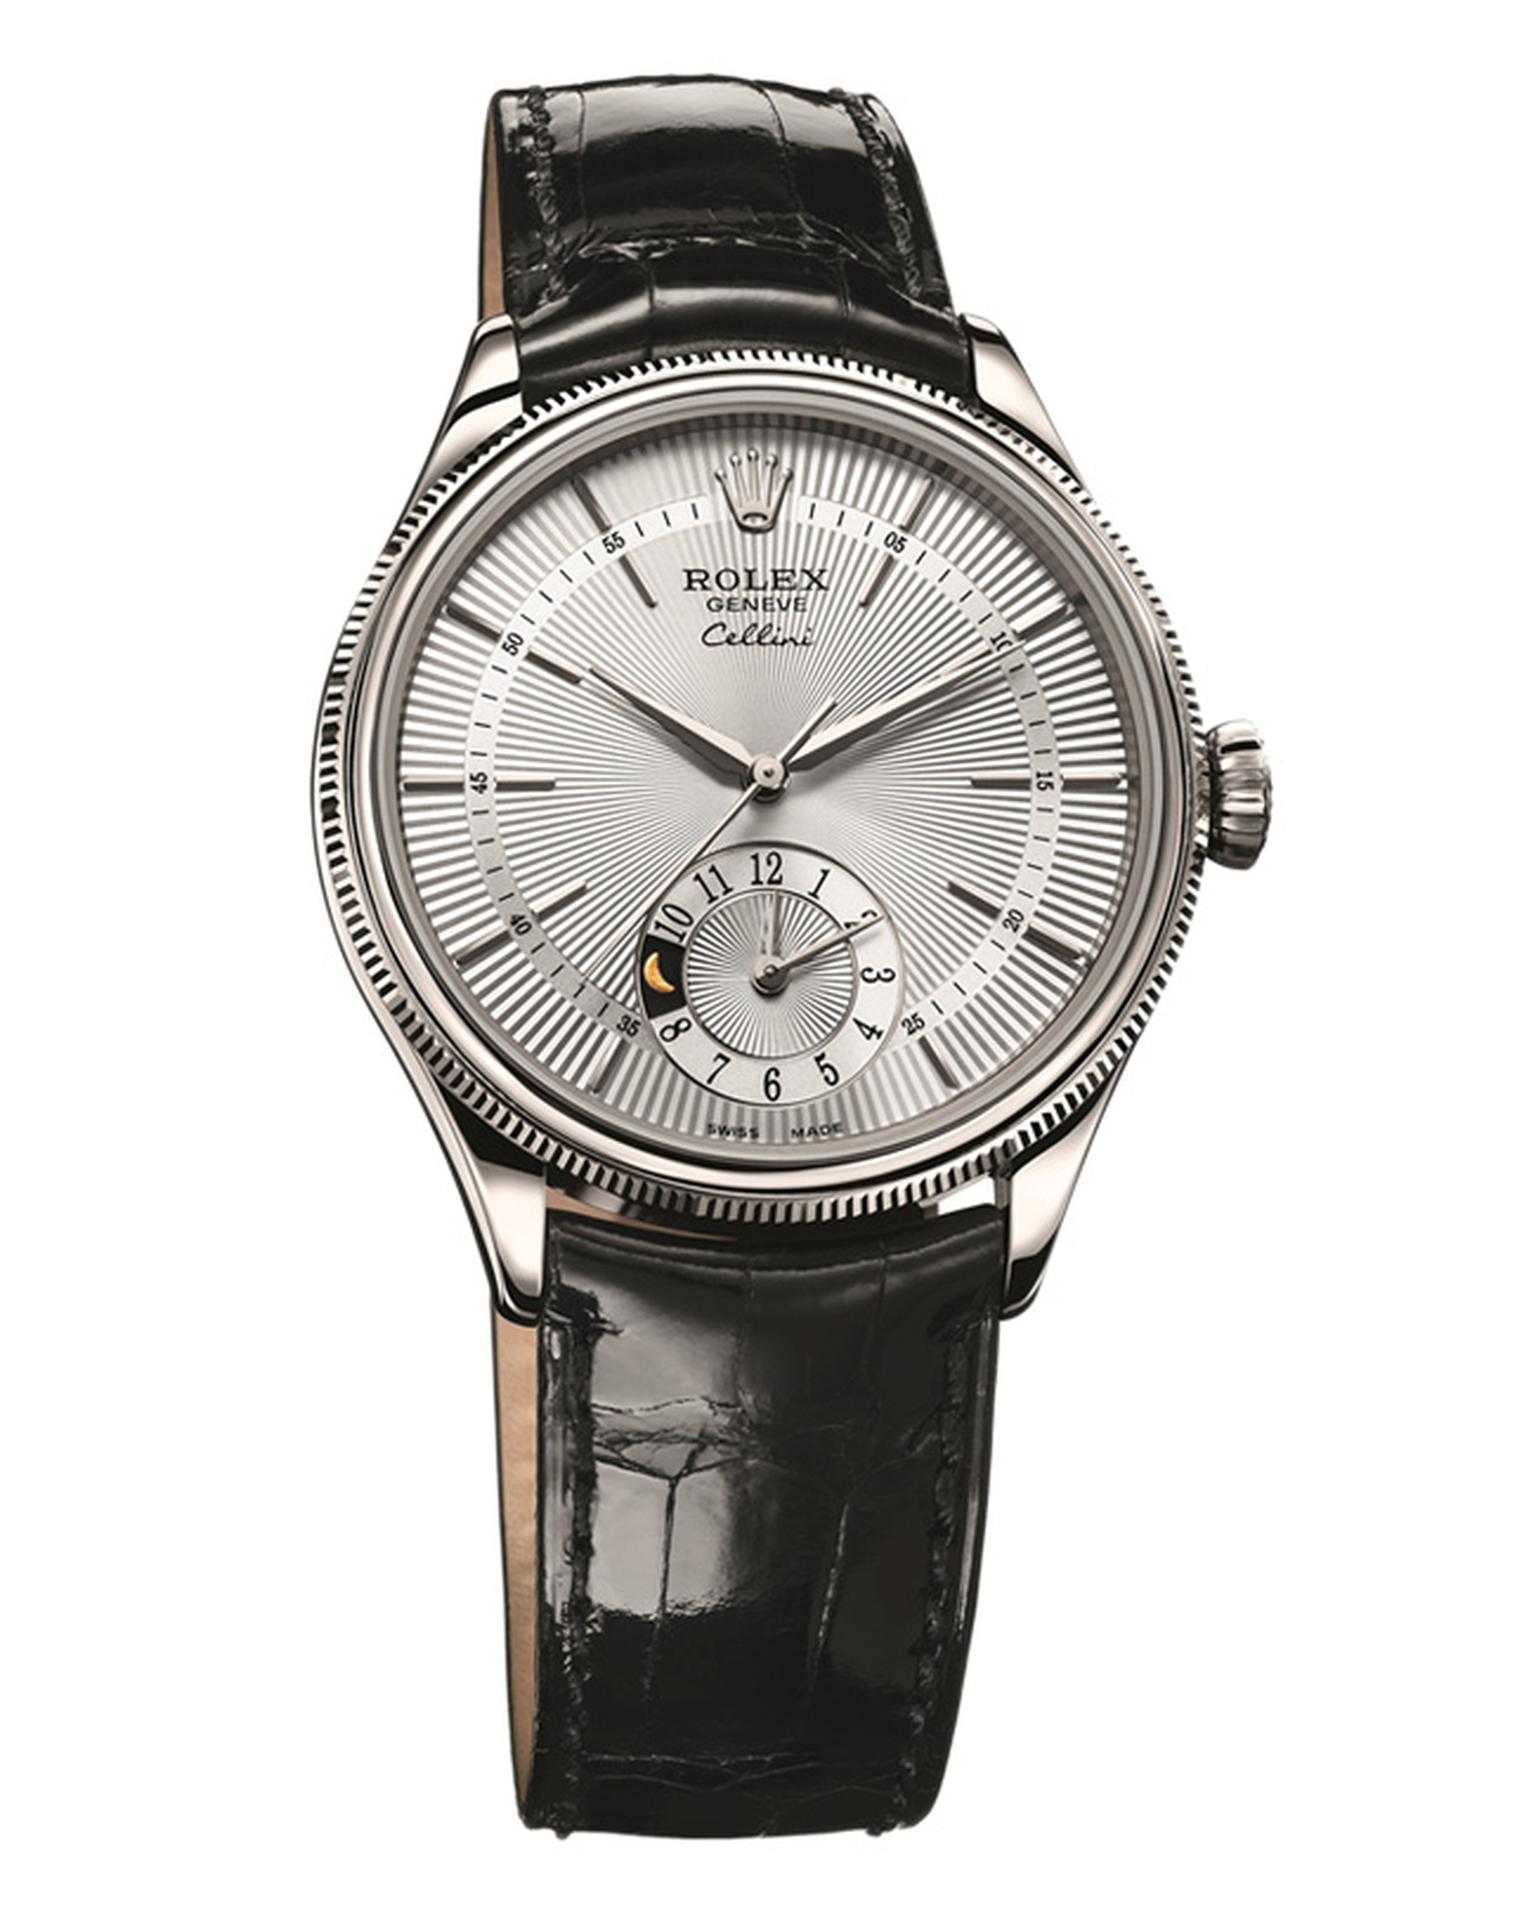 Rolex-Cellini-Dual-Time-with-Silver-guilloche-dial-ref-50525_20140415_Main